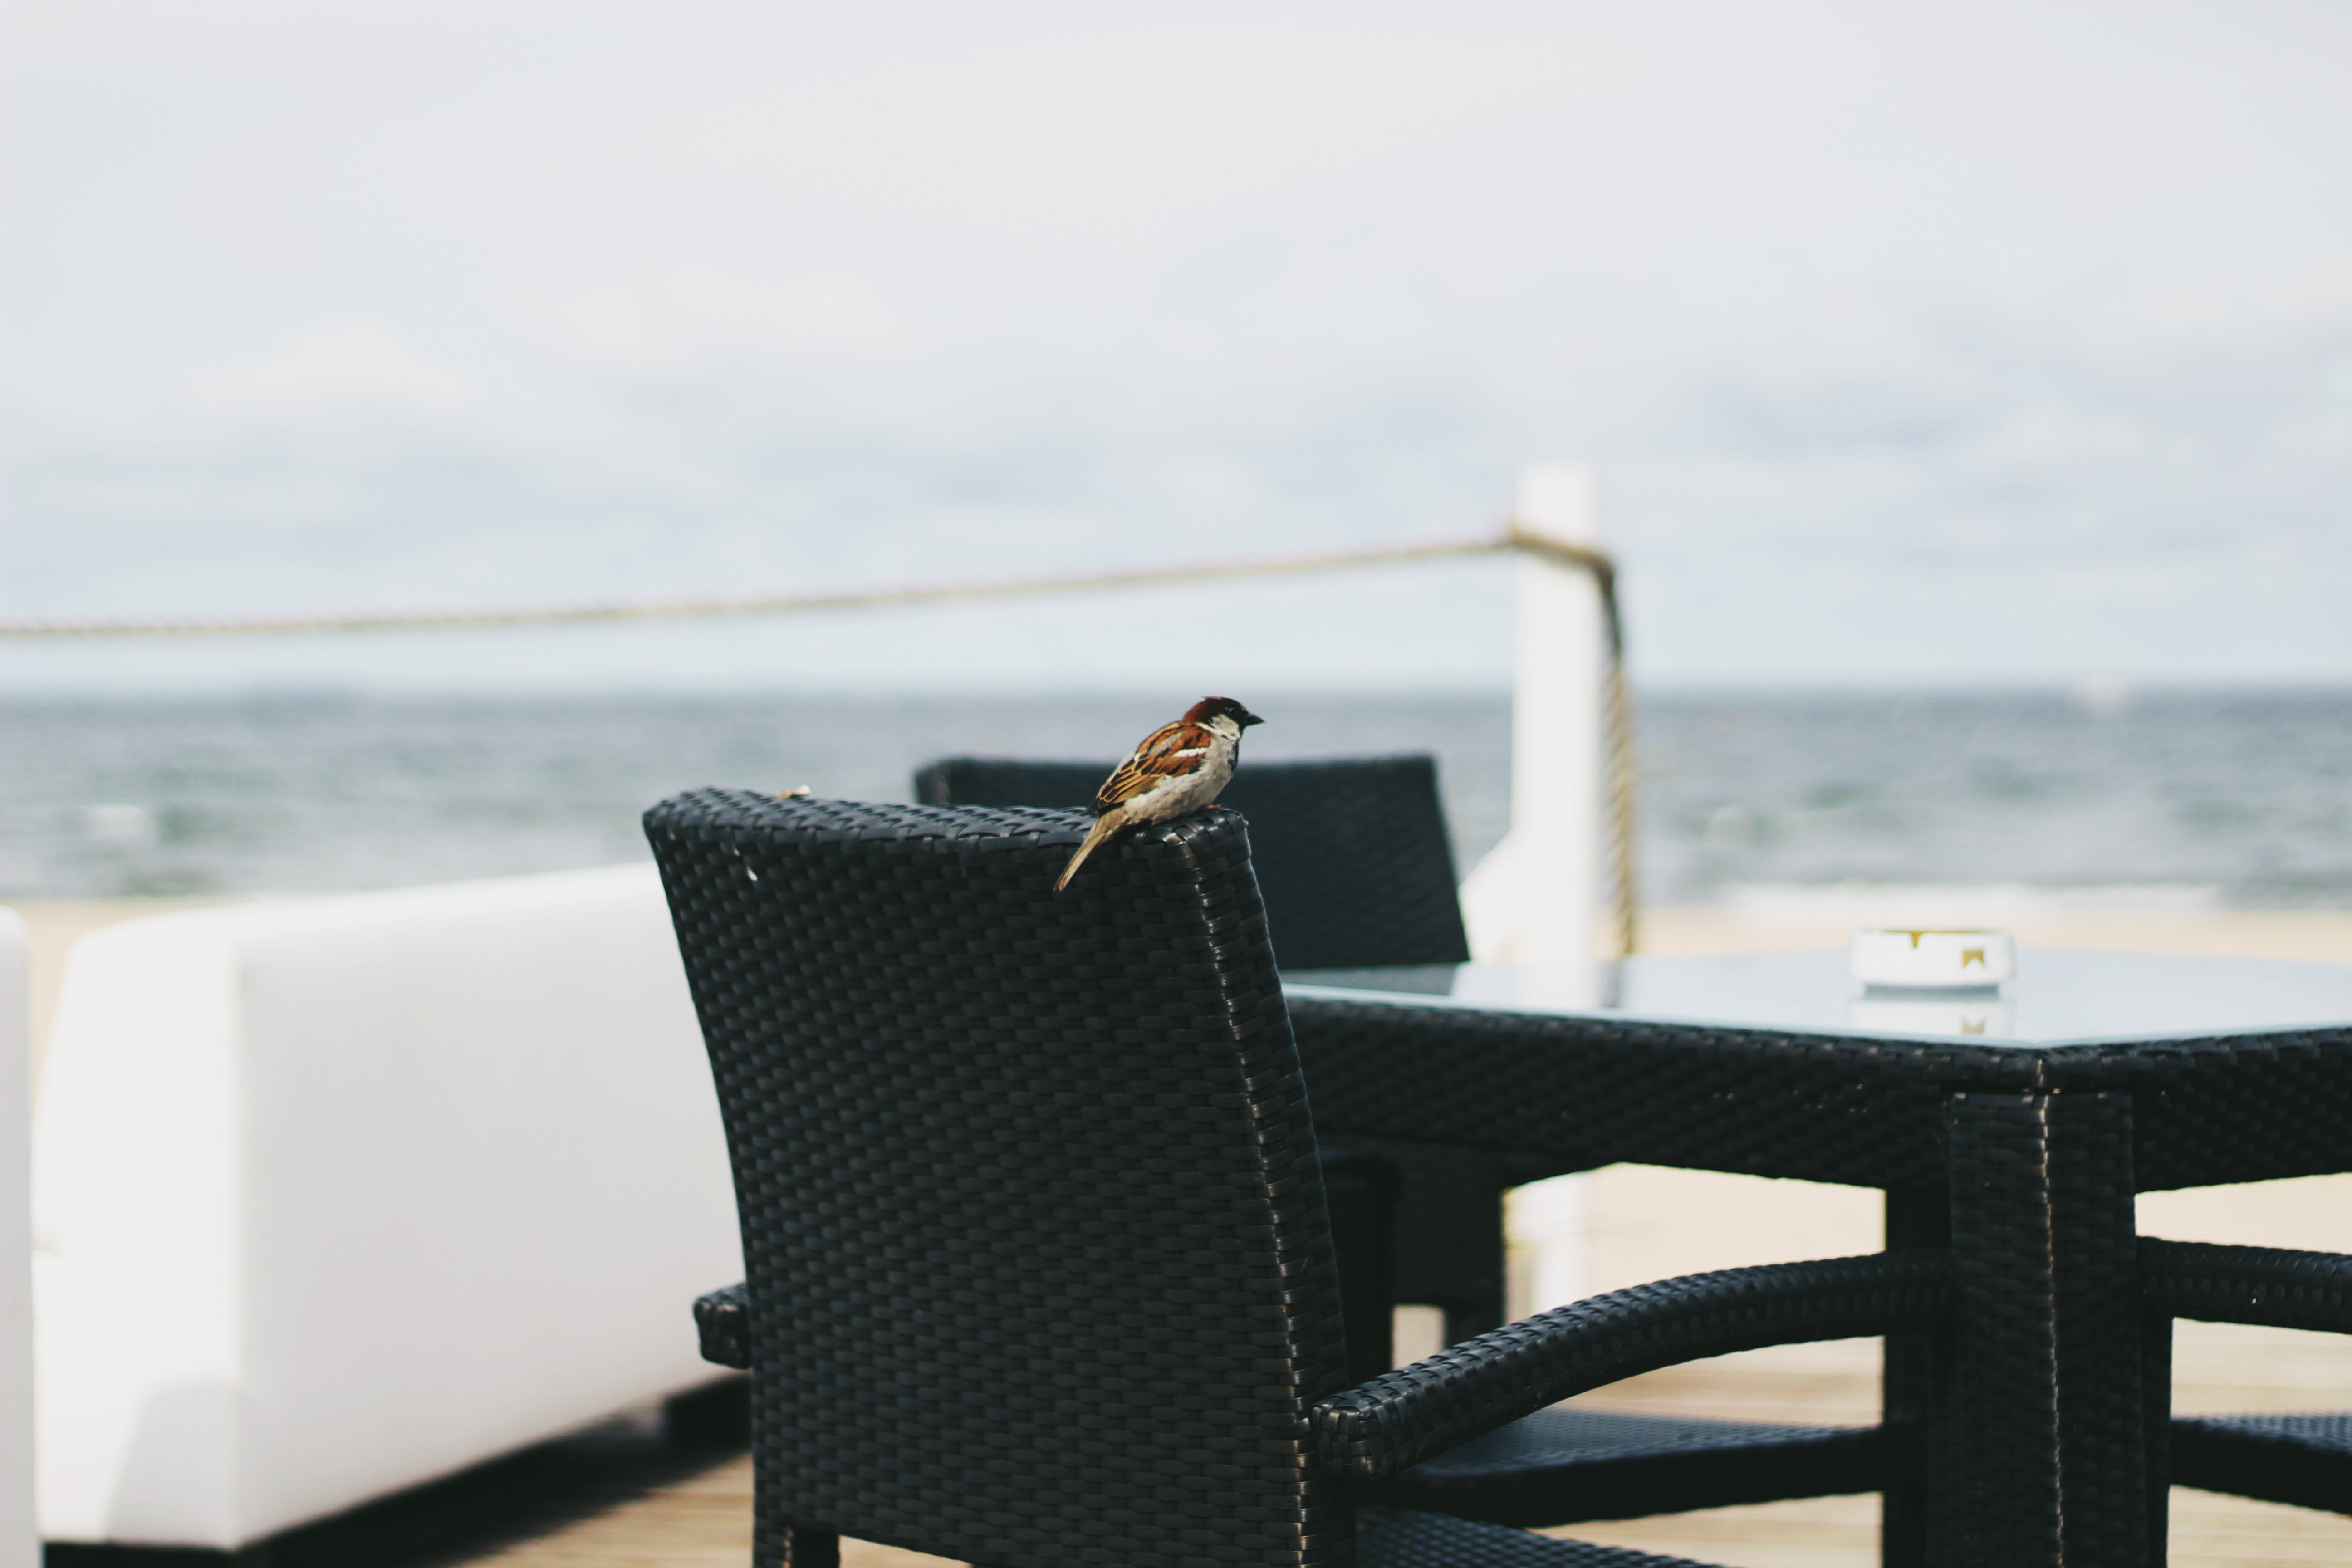 Brown Bird perched on Black Woven